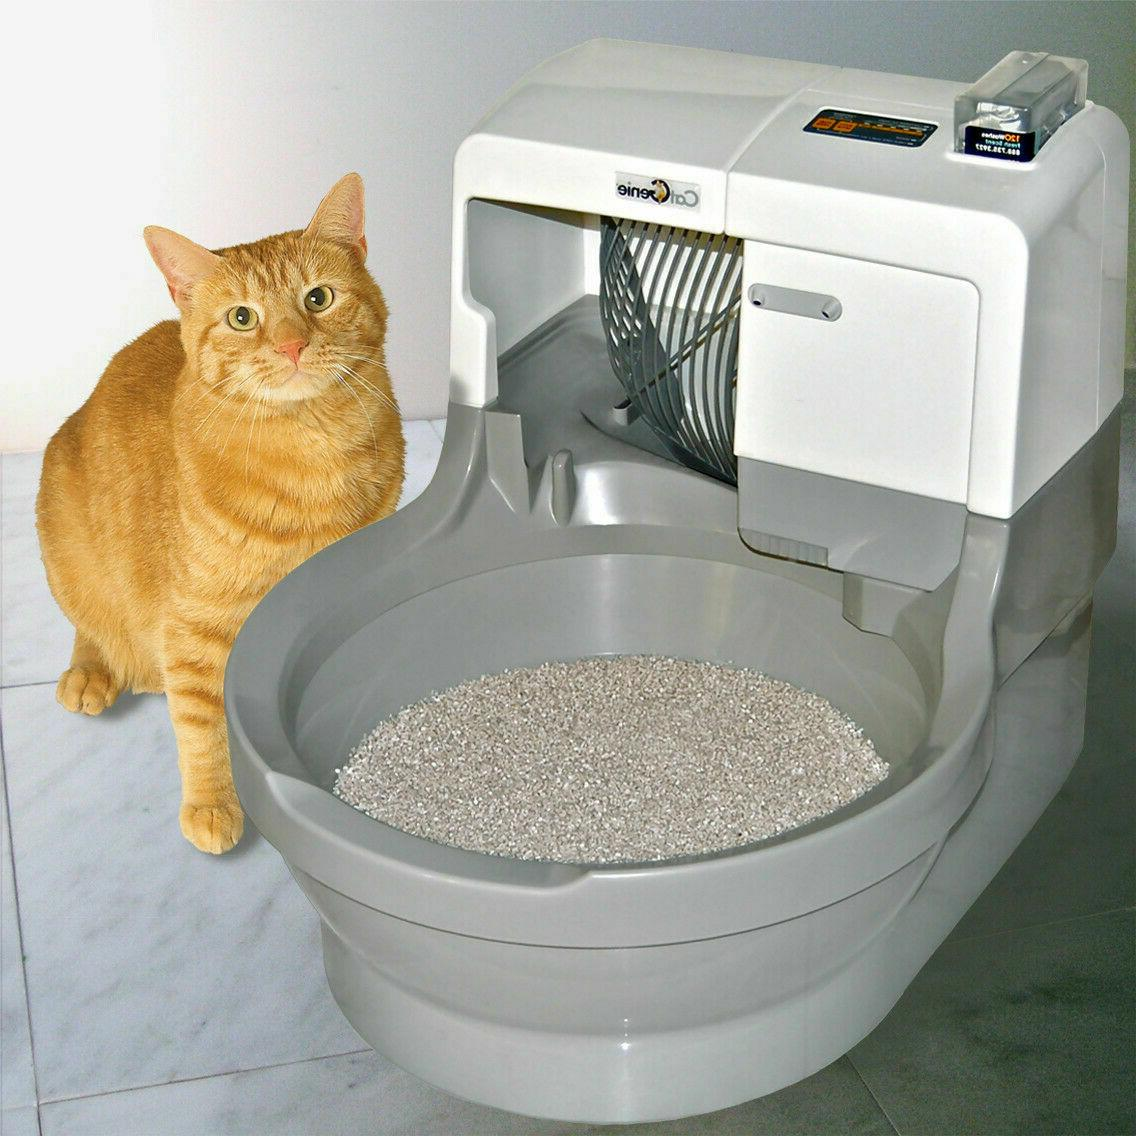 self cleaning litter box washes dries itself